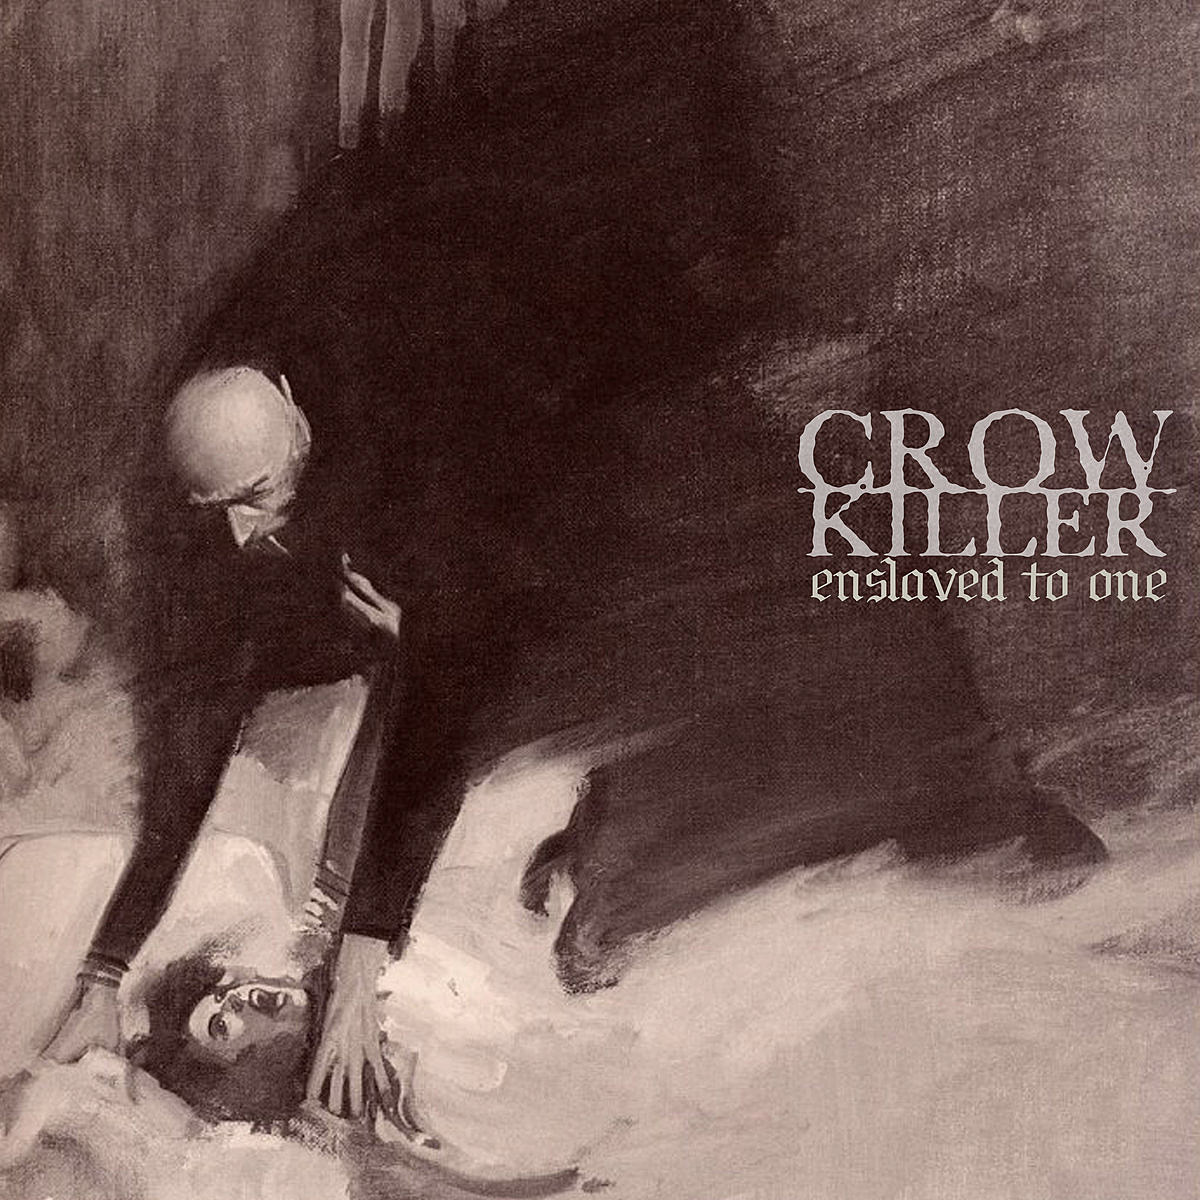 Crow Killer Enslaved to One